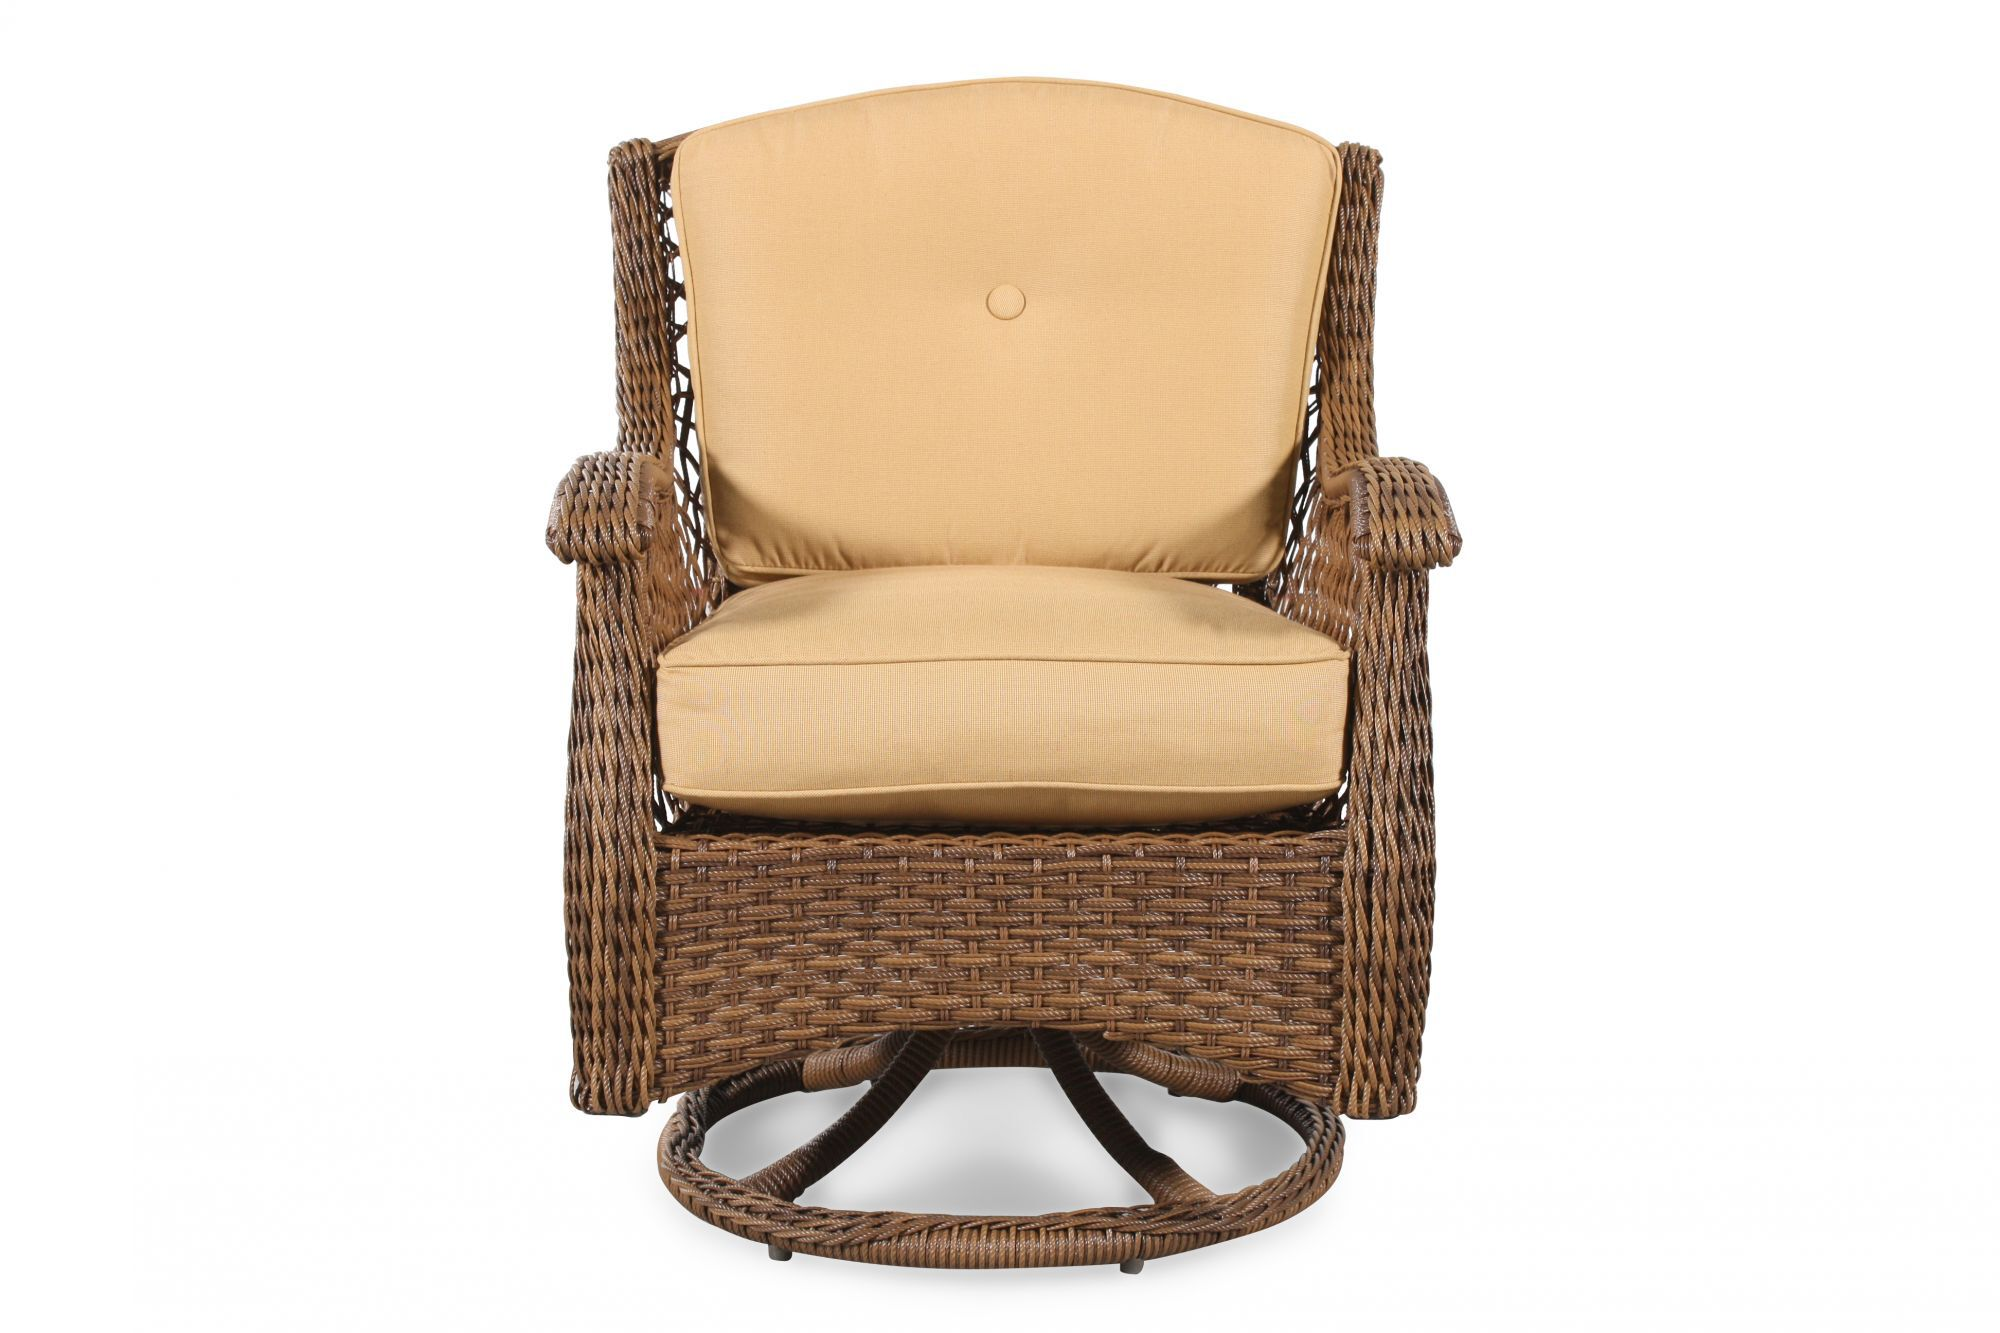 patio swivel rocker chairs jessica charles chair curved arm casual in brown mathis brothers furniture